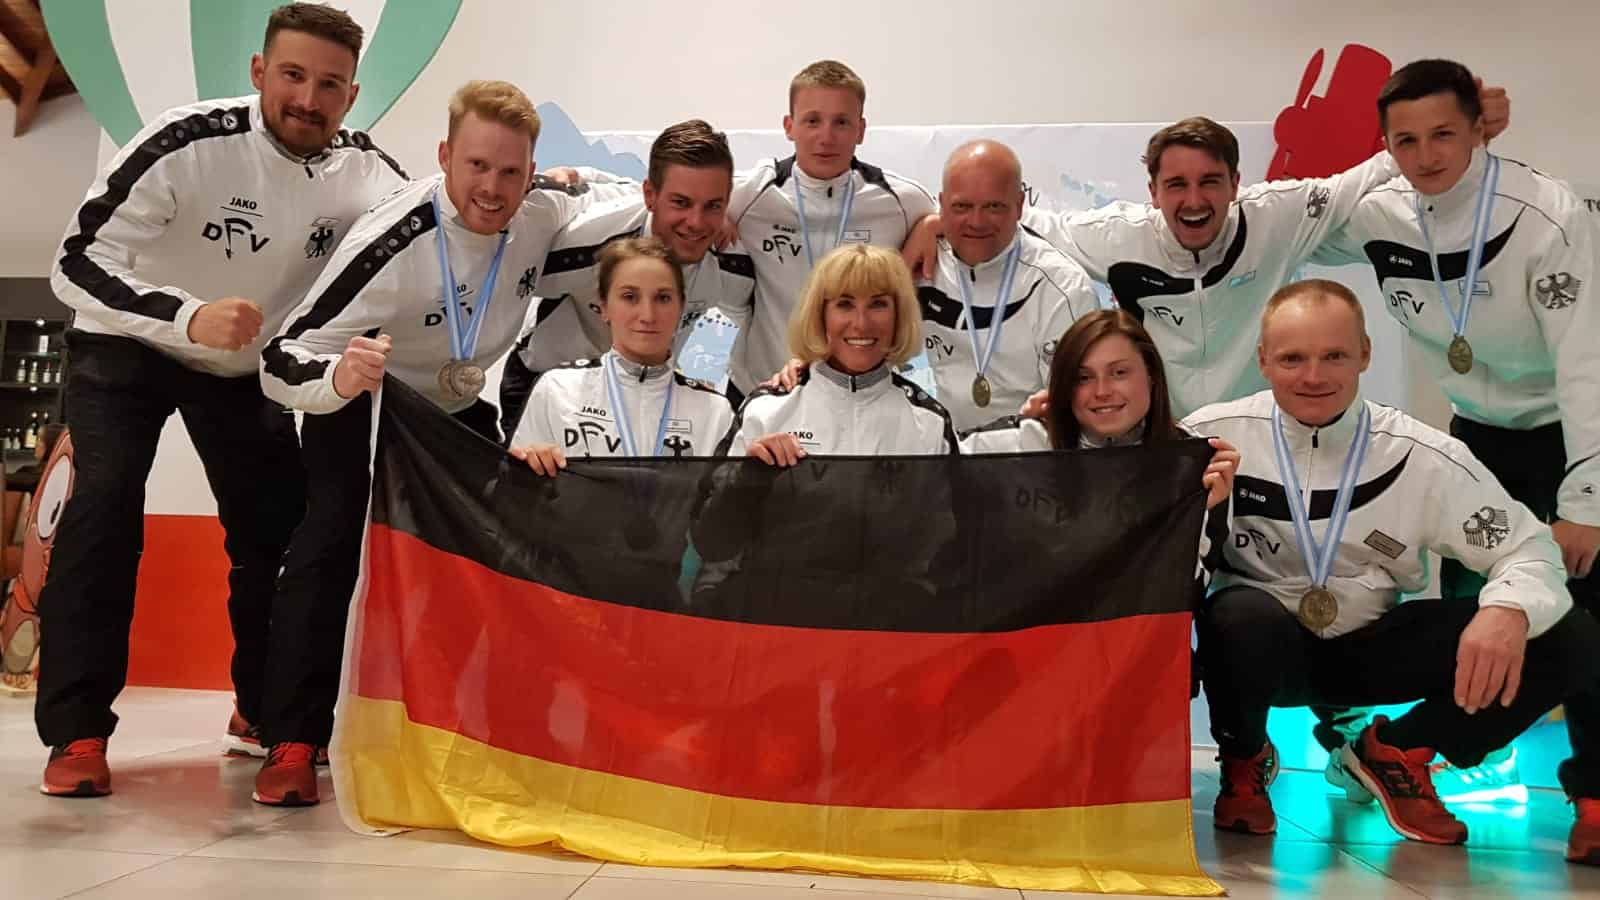 Das Deutsche Nationalteam beim World Cup in Cordoba Argentinien